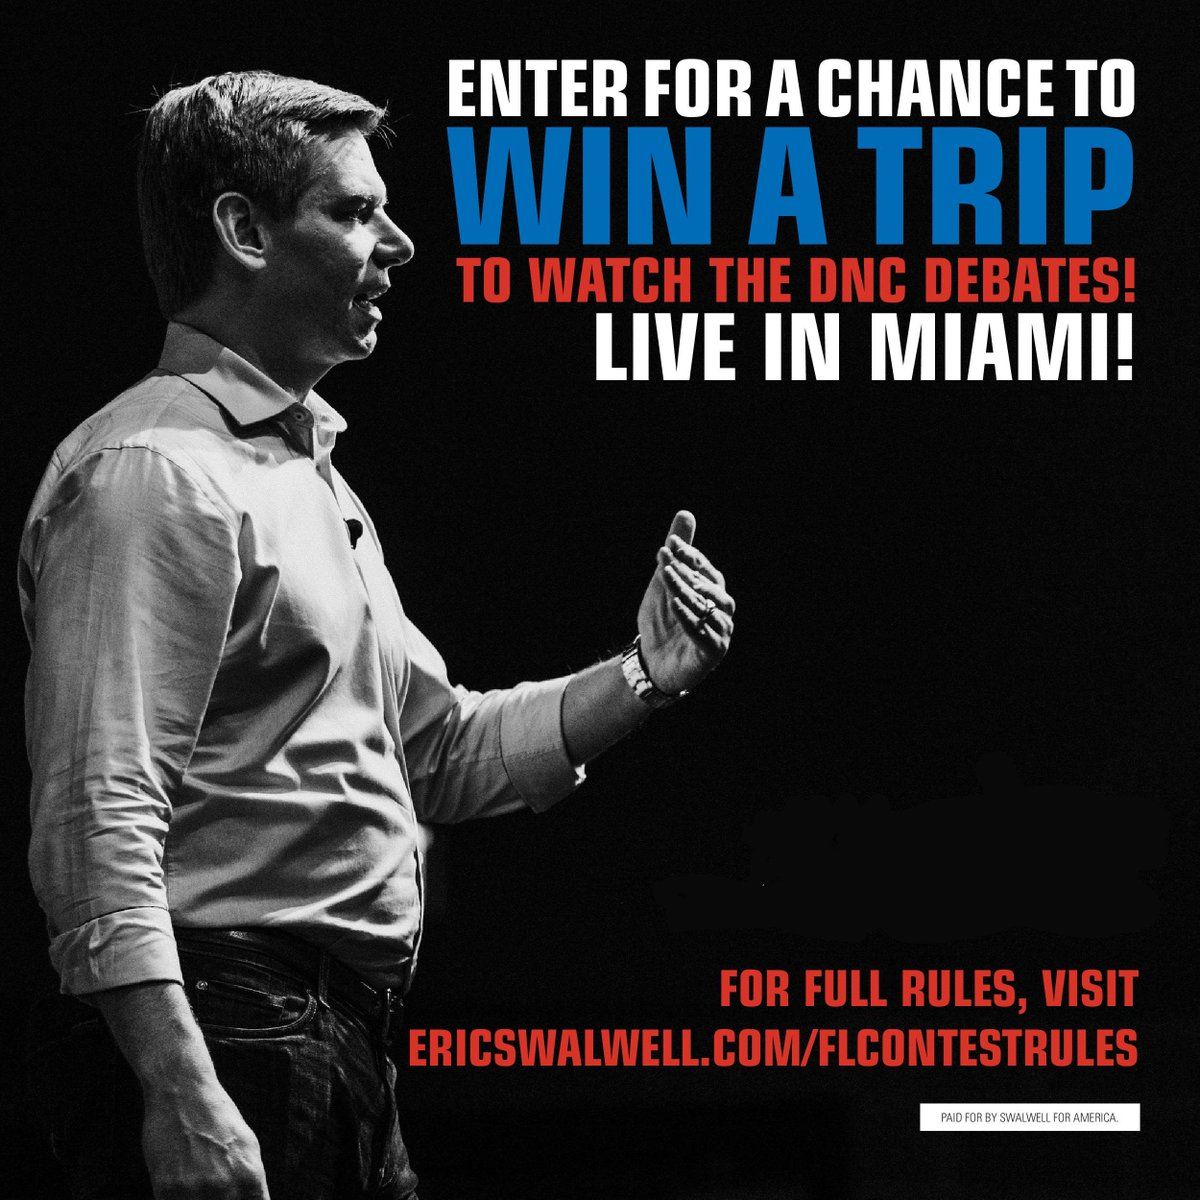 Enter by 12PM PT to win a trip to watch the debates in Miami!! Head over to http://ericswalwell.com/flcontestrules !